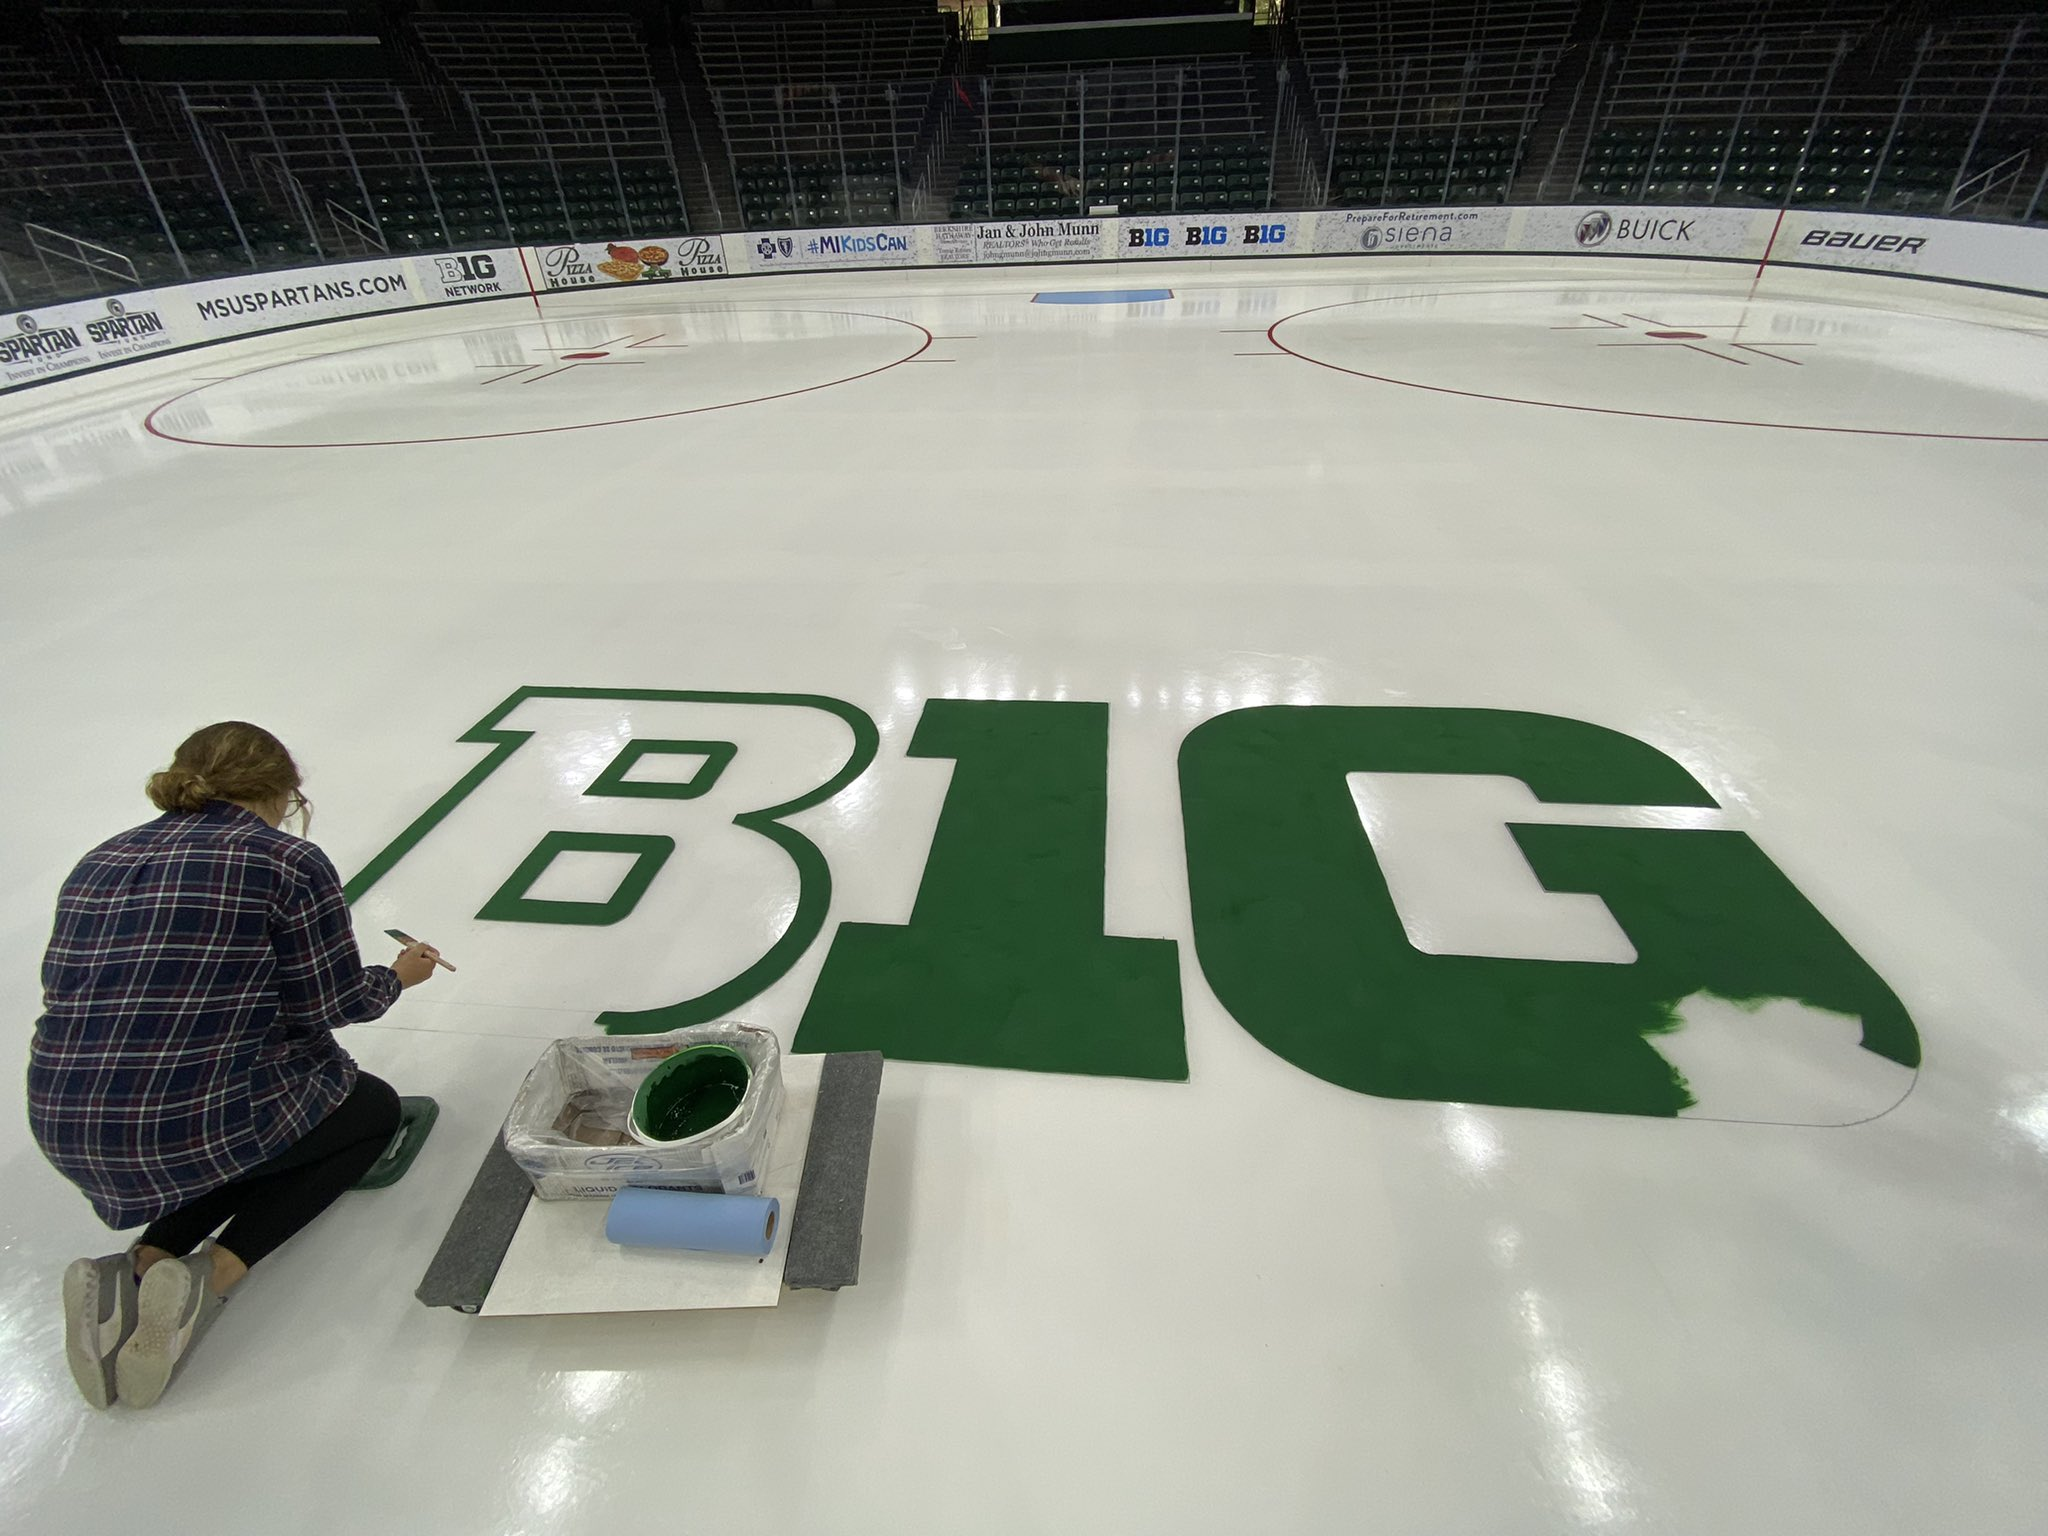 Cool as ice. Some behind-the-scenes magic at Munn Ice Arena